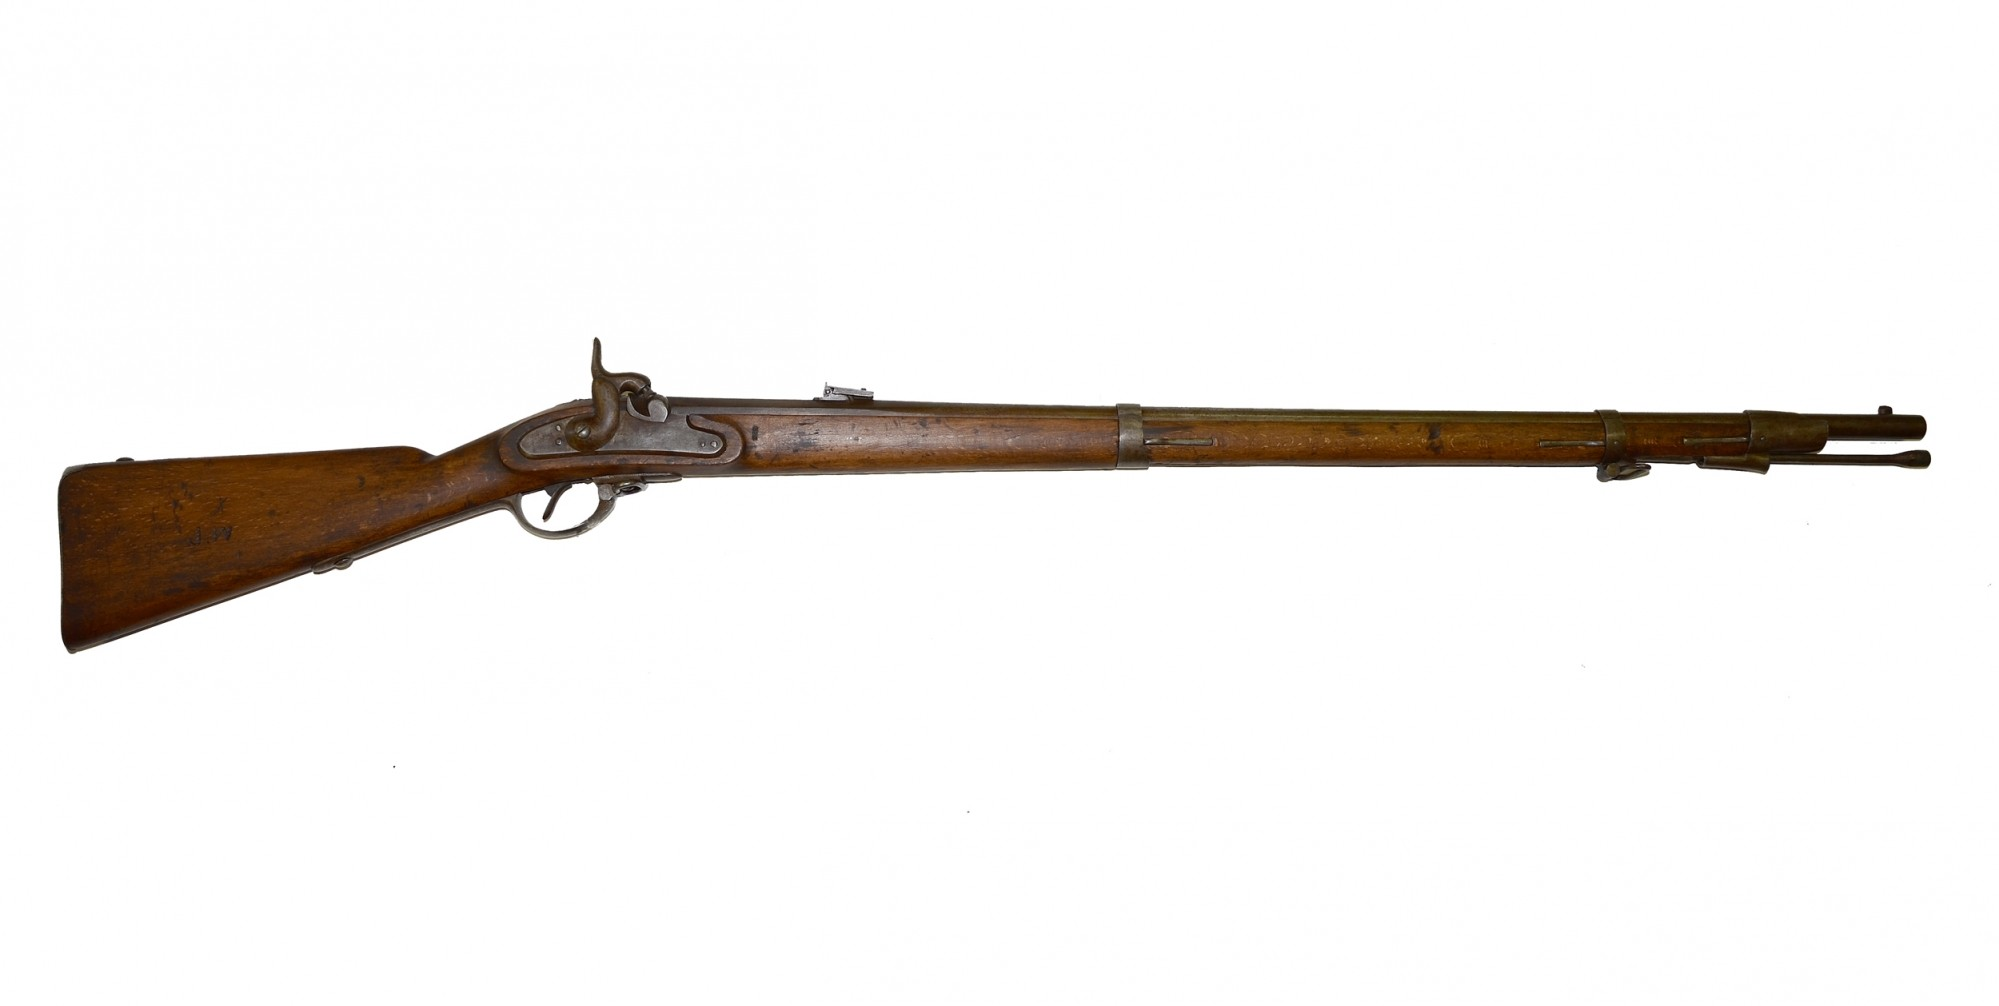 AUSTRIAN MODEL 1854 'LORENZ' PERCUSSION CONTRACT RIFLE-MUSKET